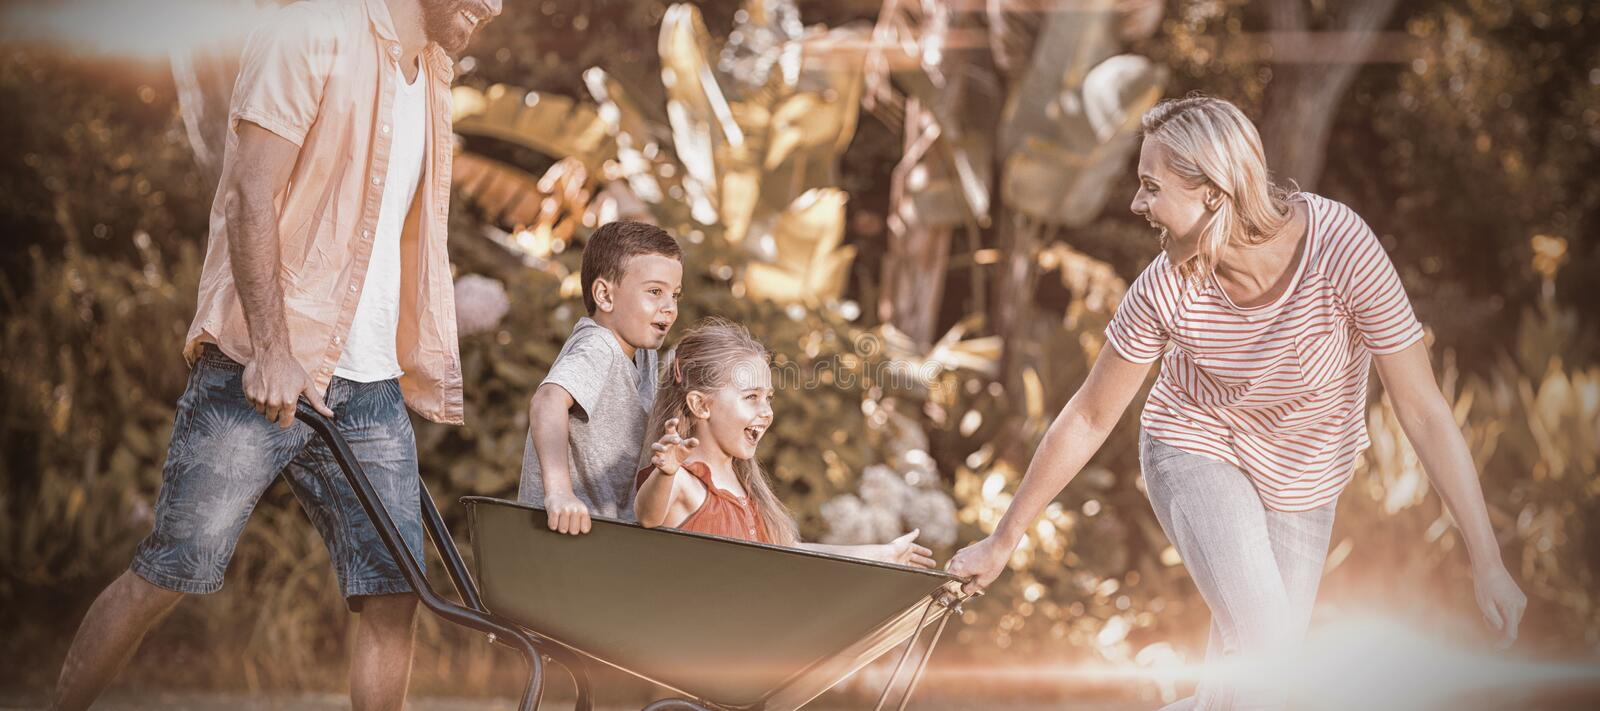 Parents pushing children sitting in wheelbarrow at yard stock images